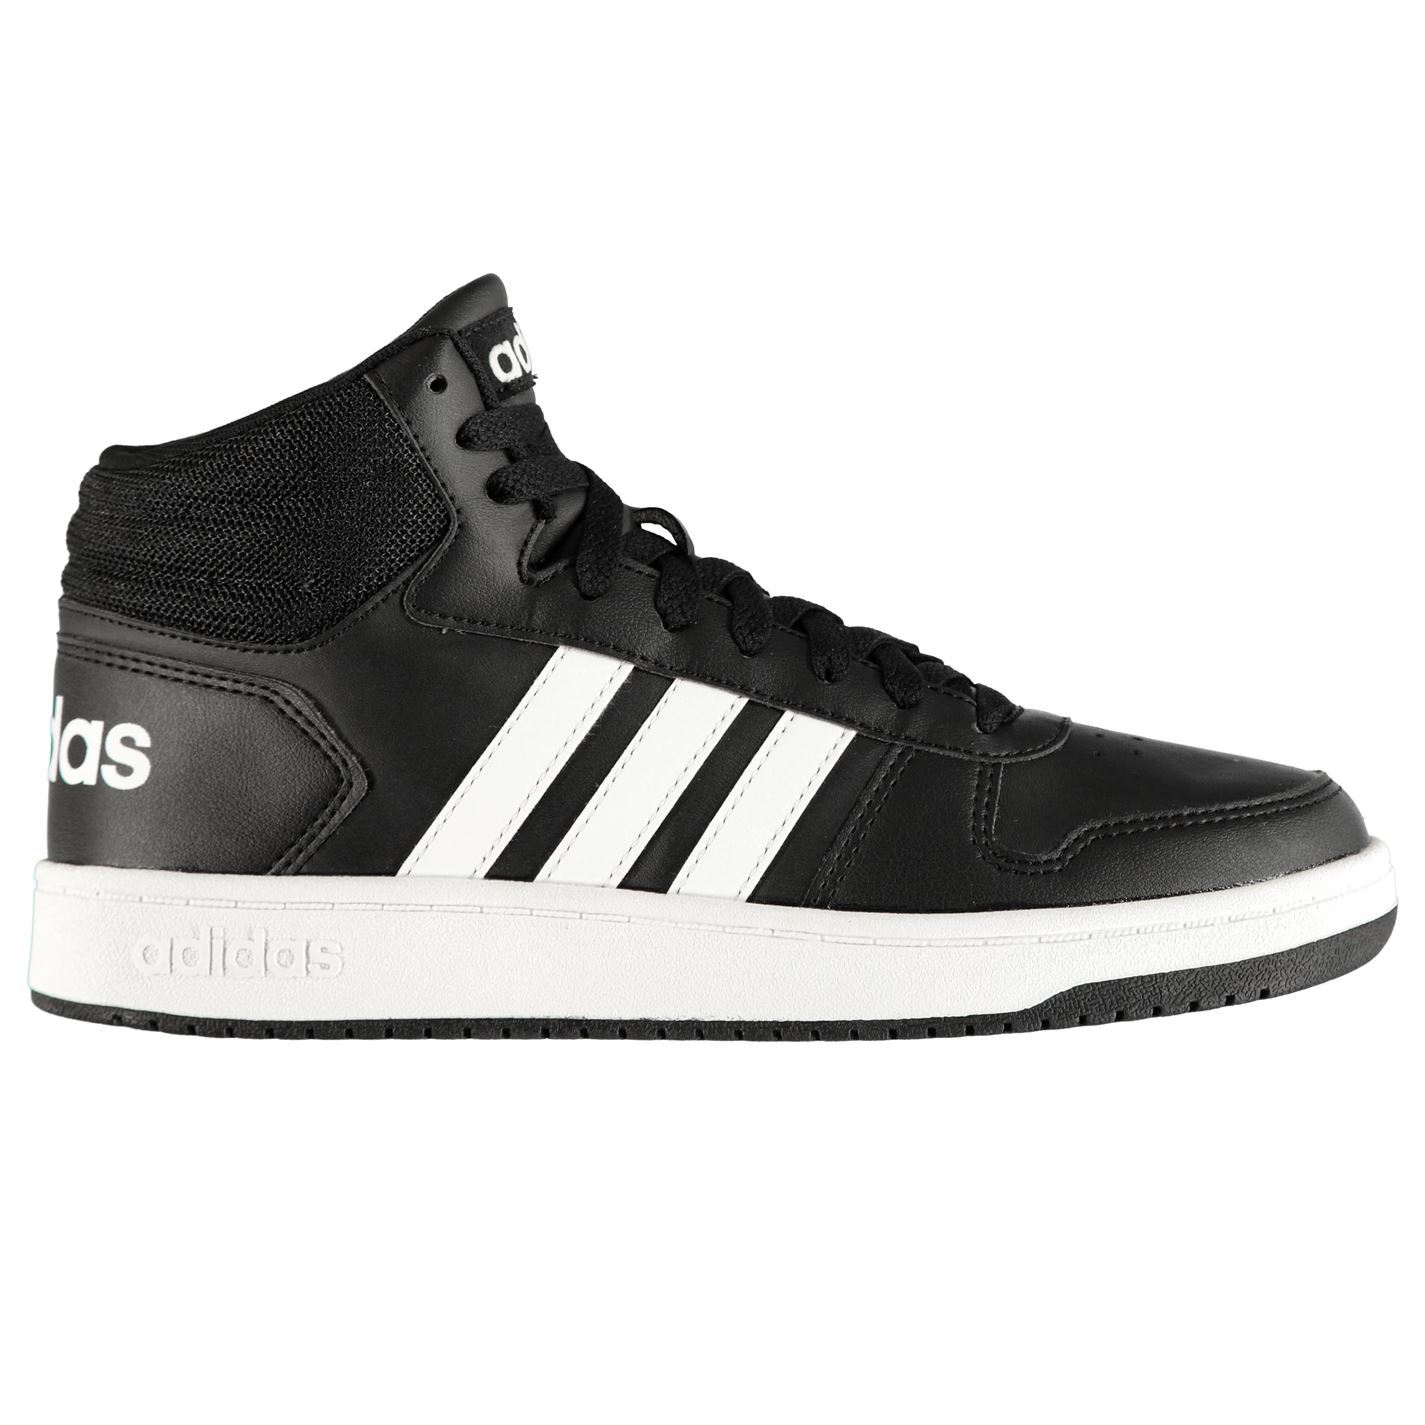 Adidas-Hoops-Mi-Montantes-Homme-athleisure-Chaussures-Baskets-Chaussures miniature 6